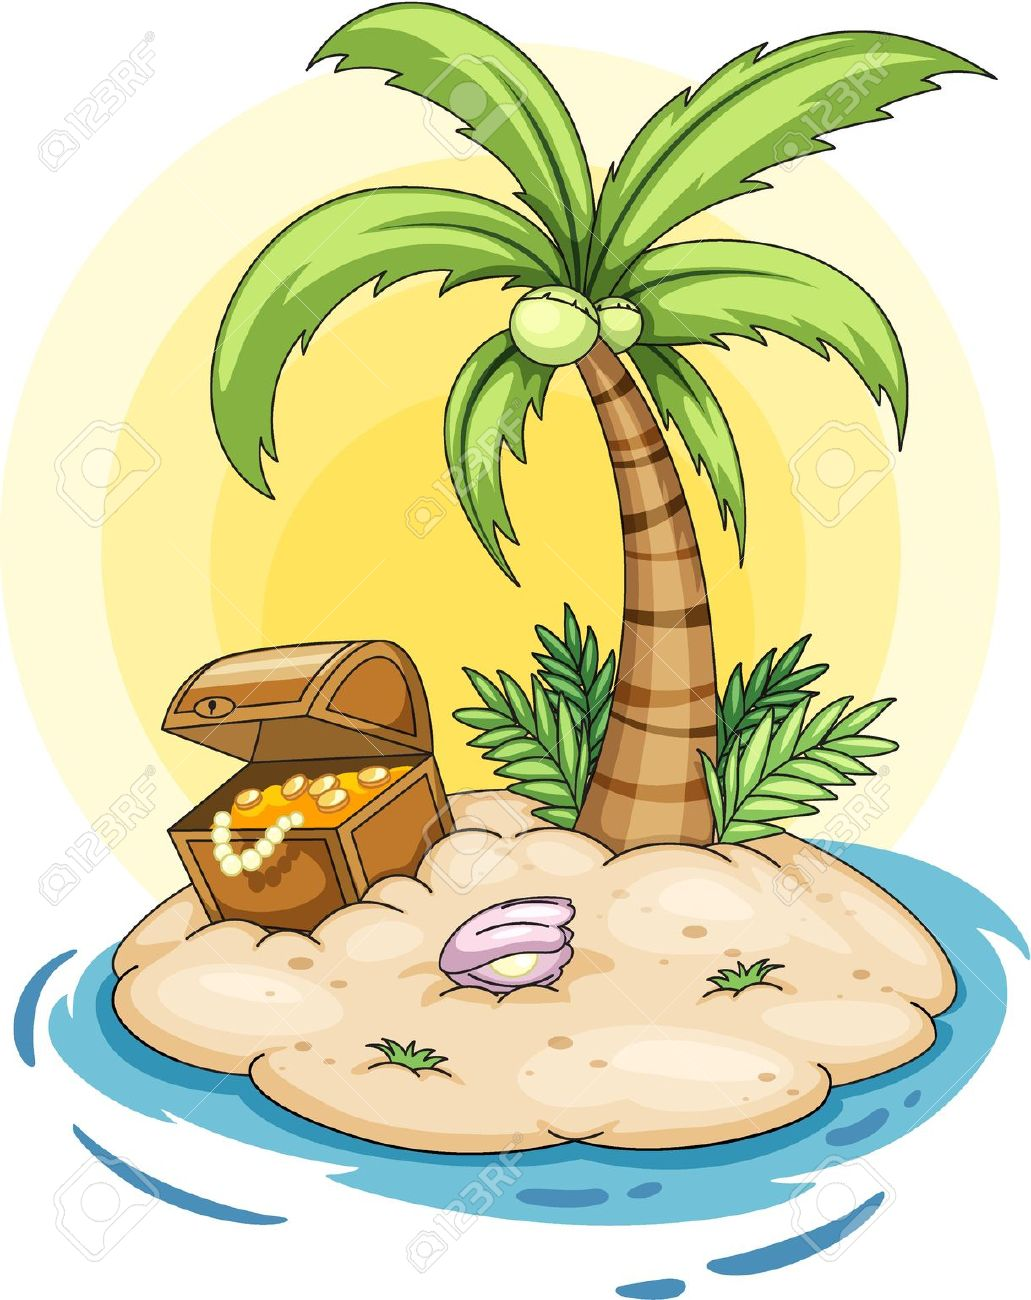 Illustration Of A Deserted Island Royalty Free Cliparts, Vectors.